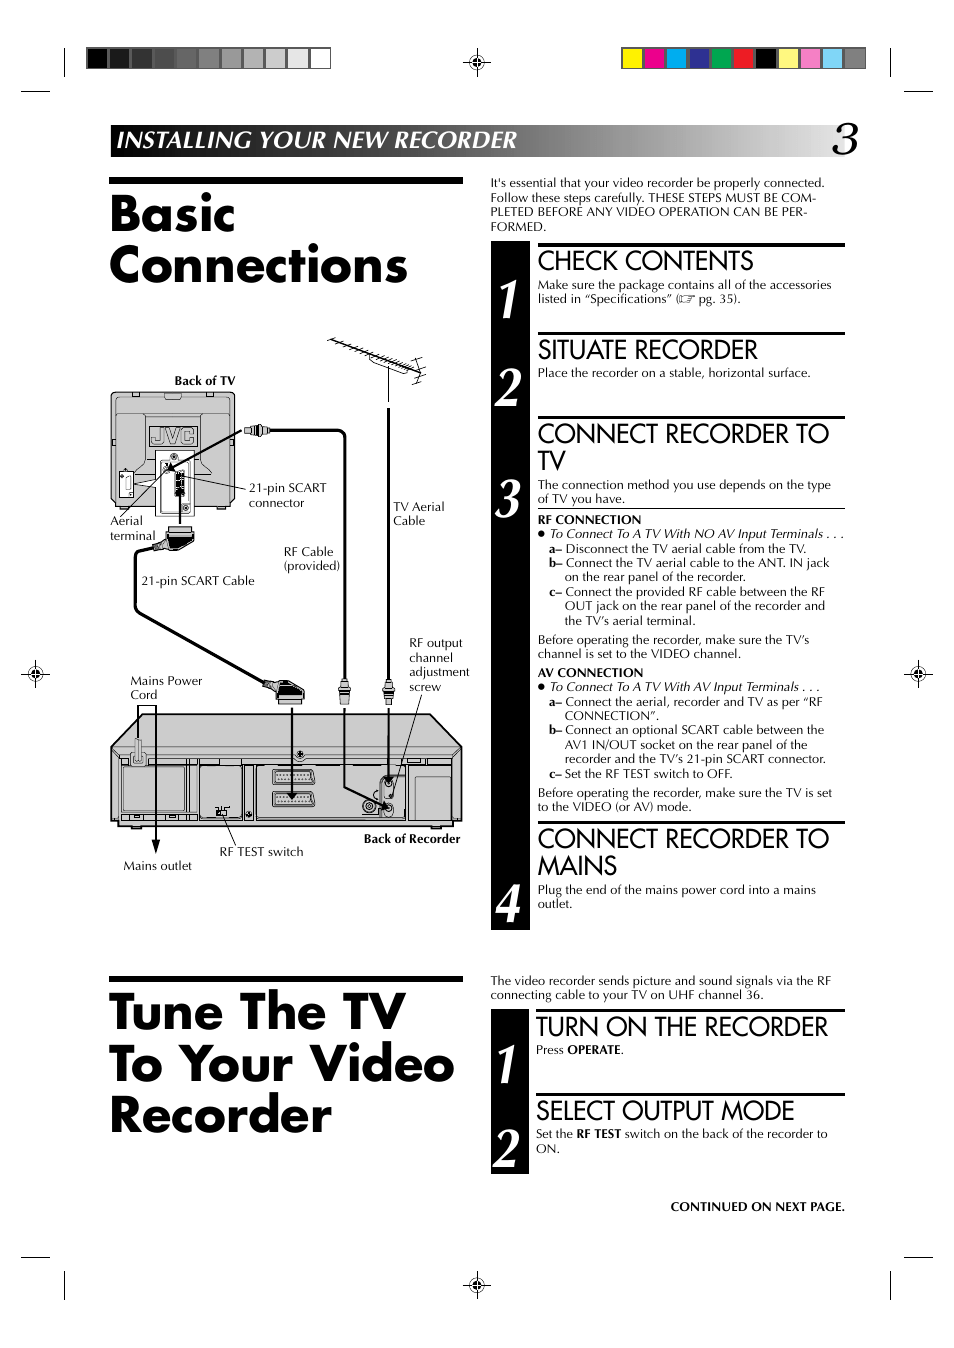 Basic connections, Tune the tv to your video recorder